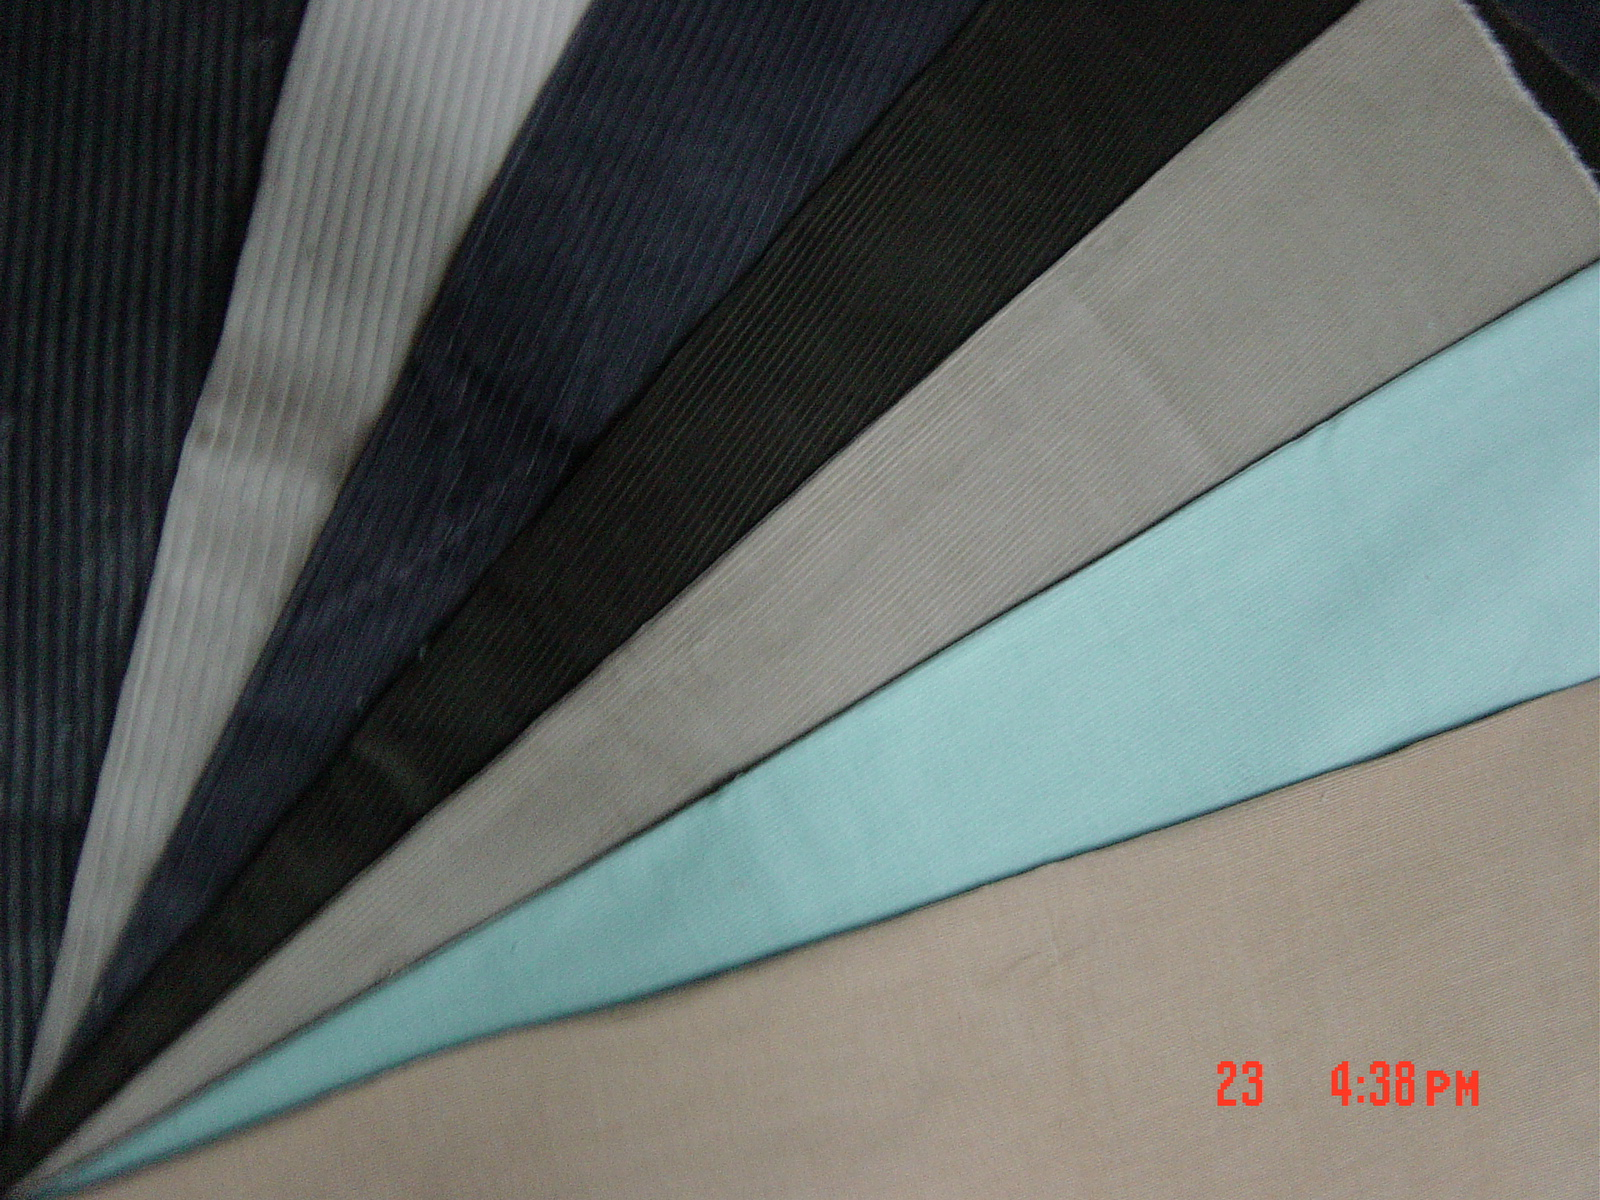 DIFFERENT KINDS OF FABRICS